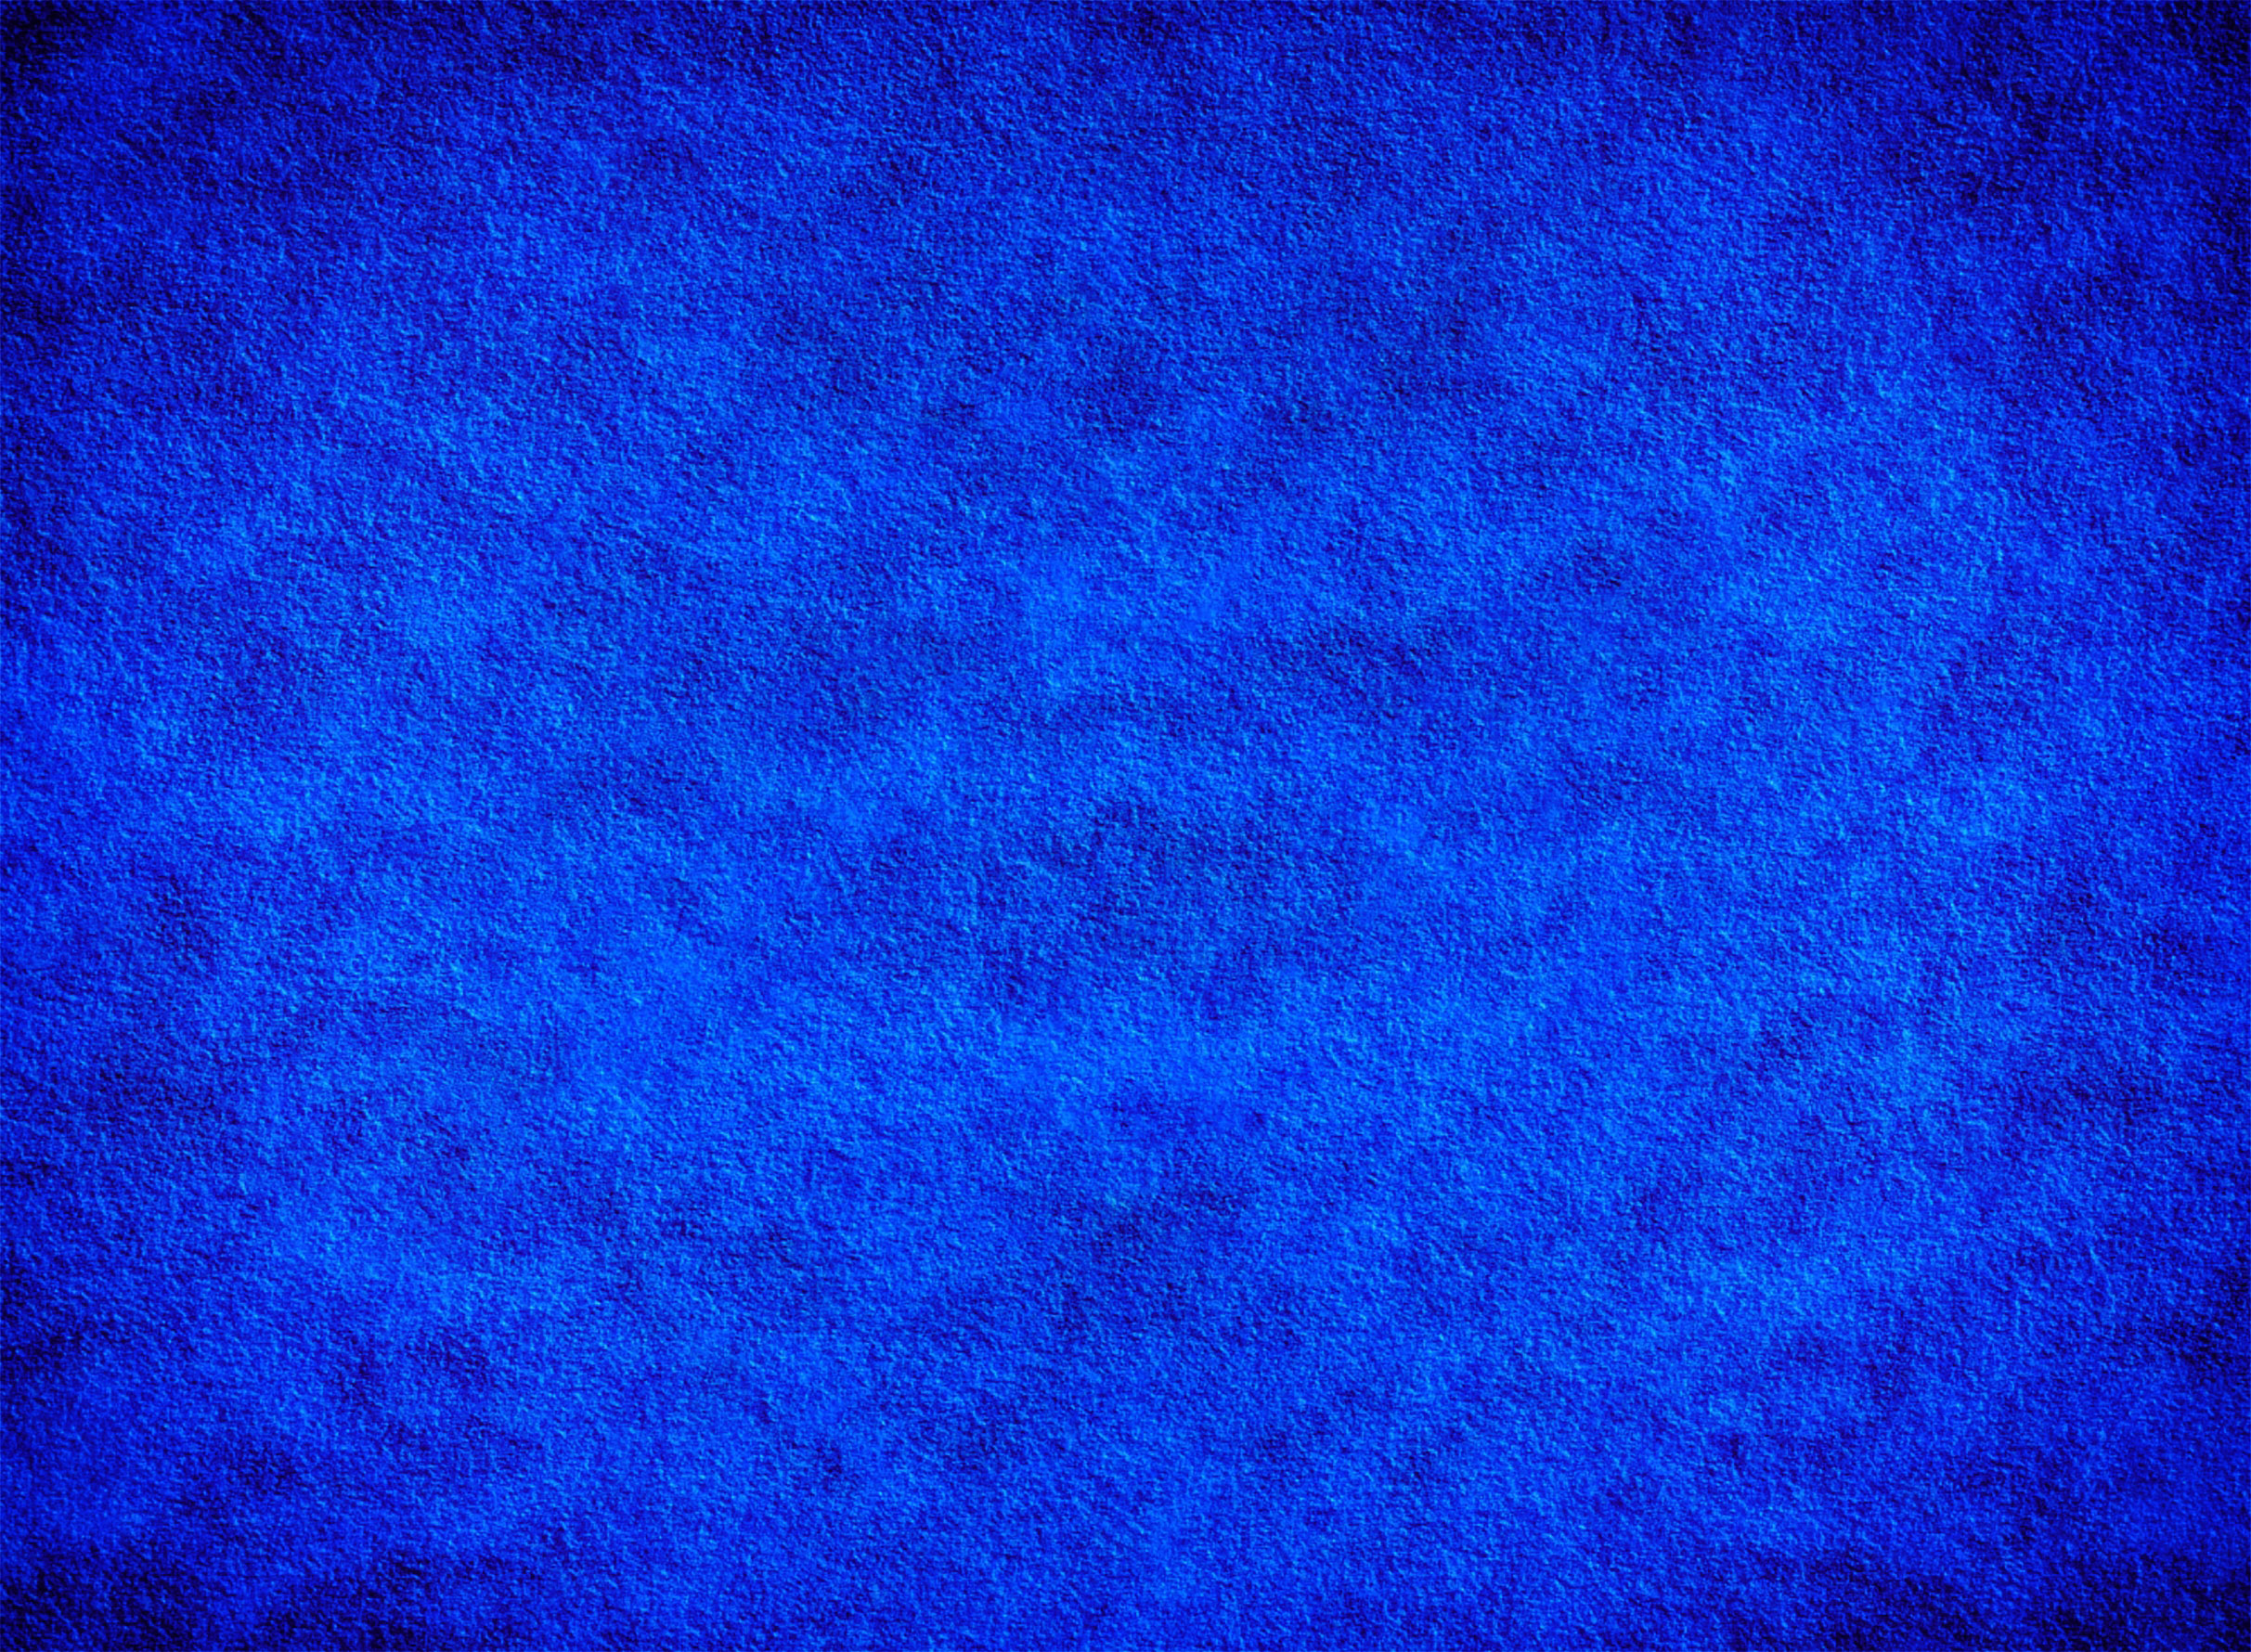 Blue background - rough surface photo